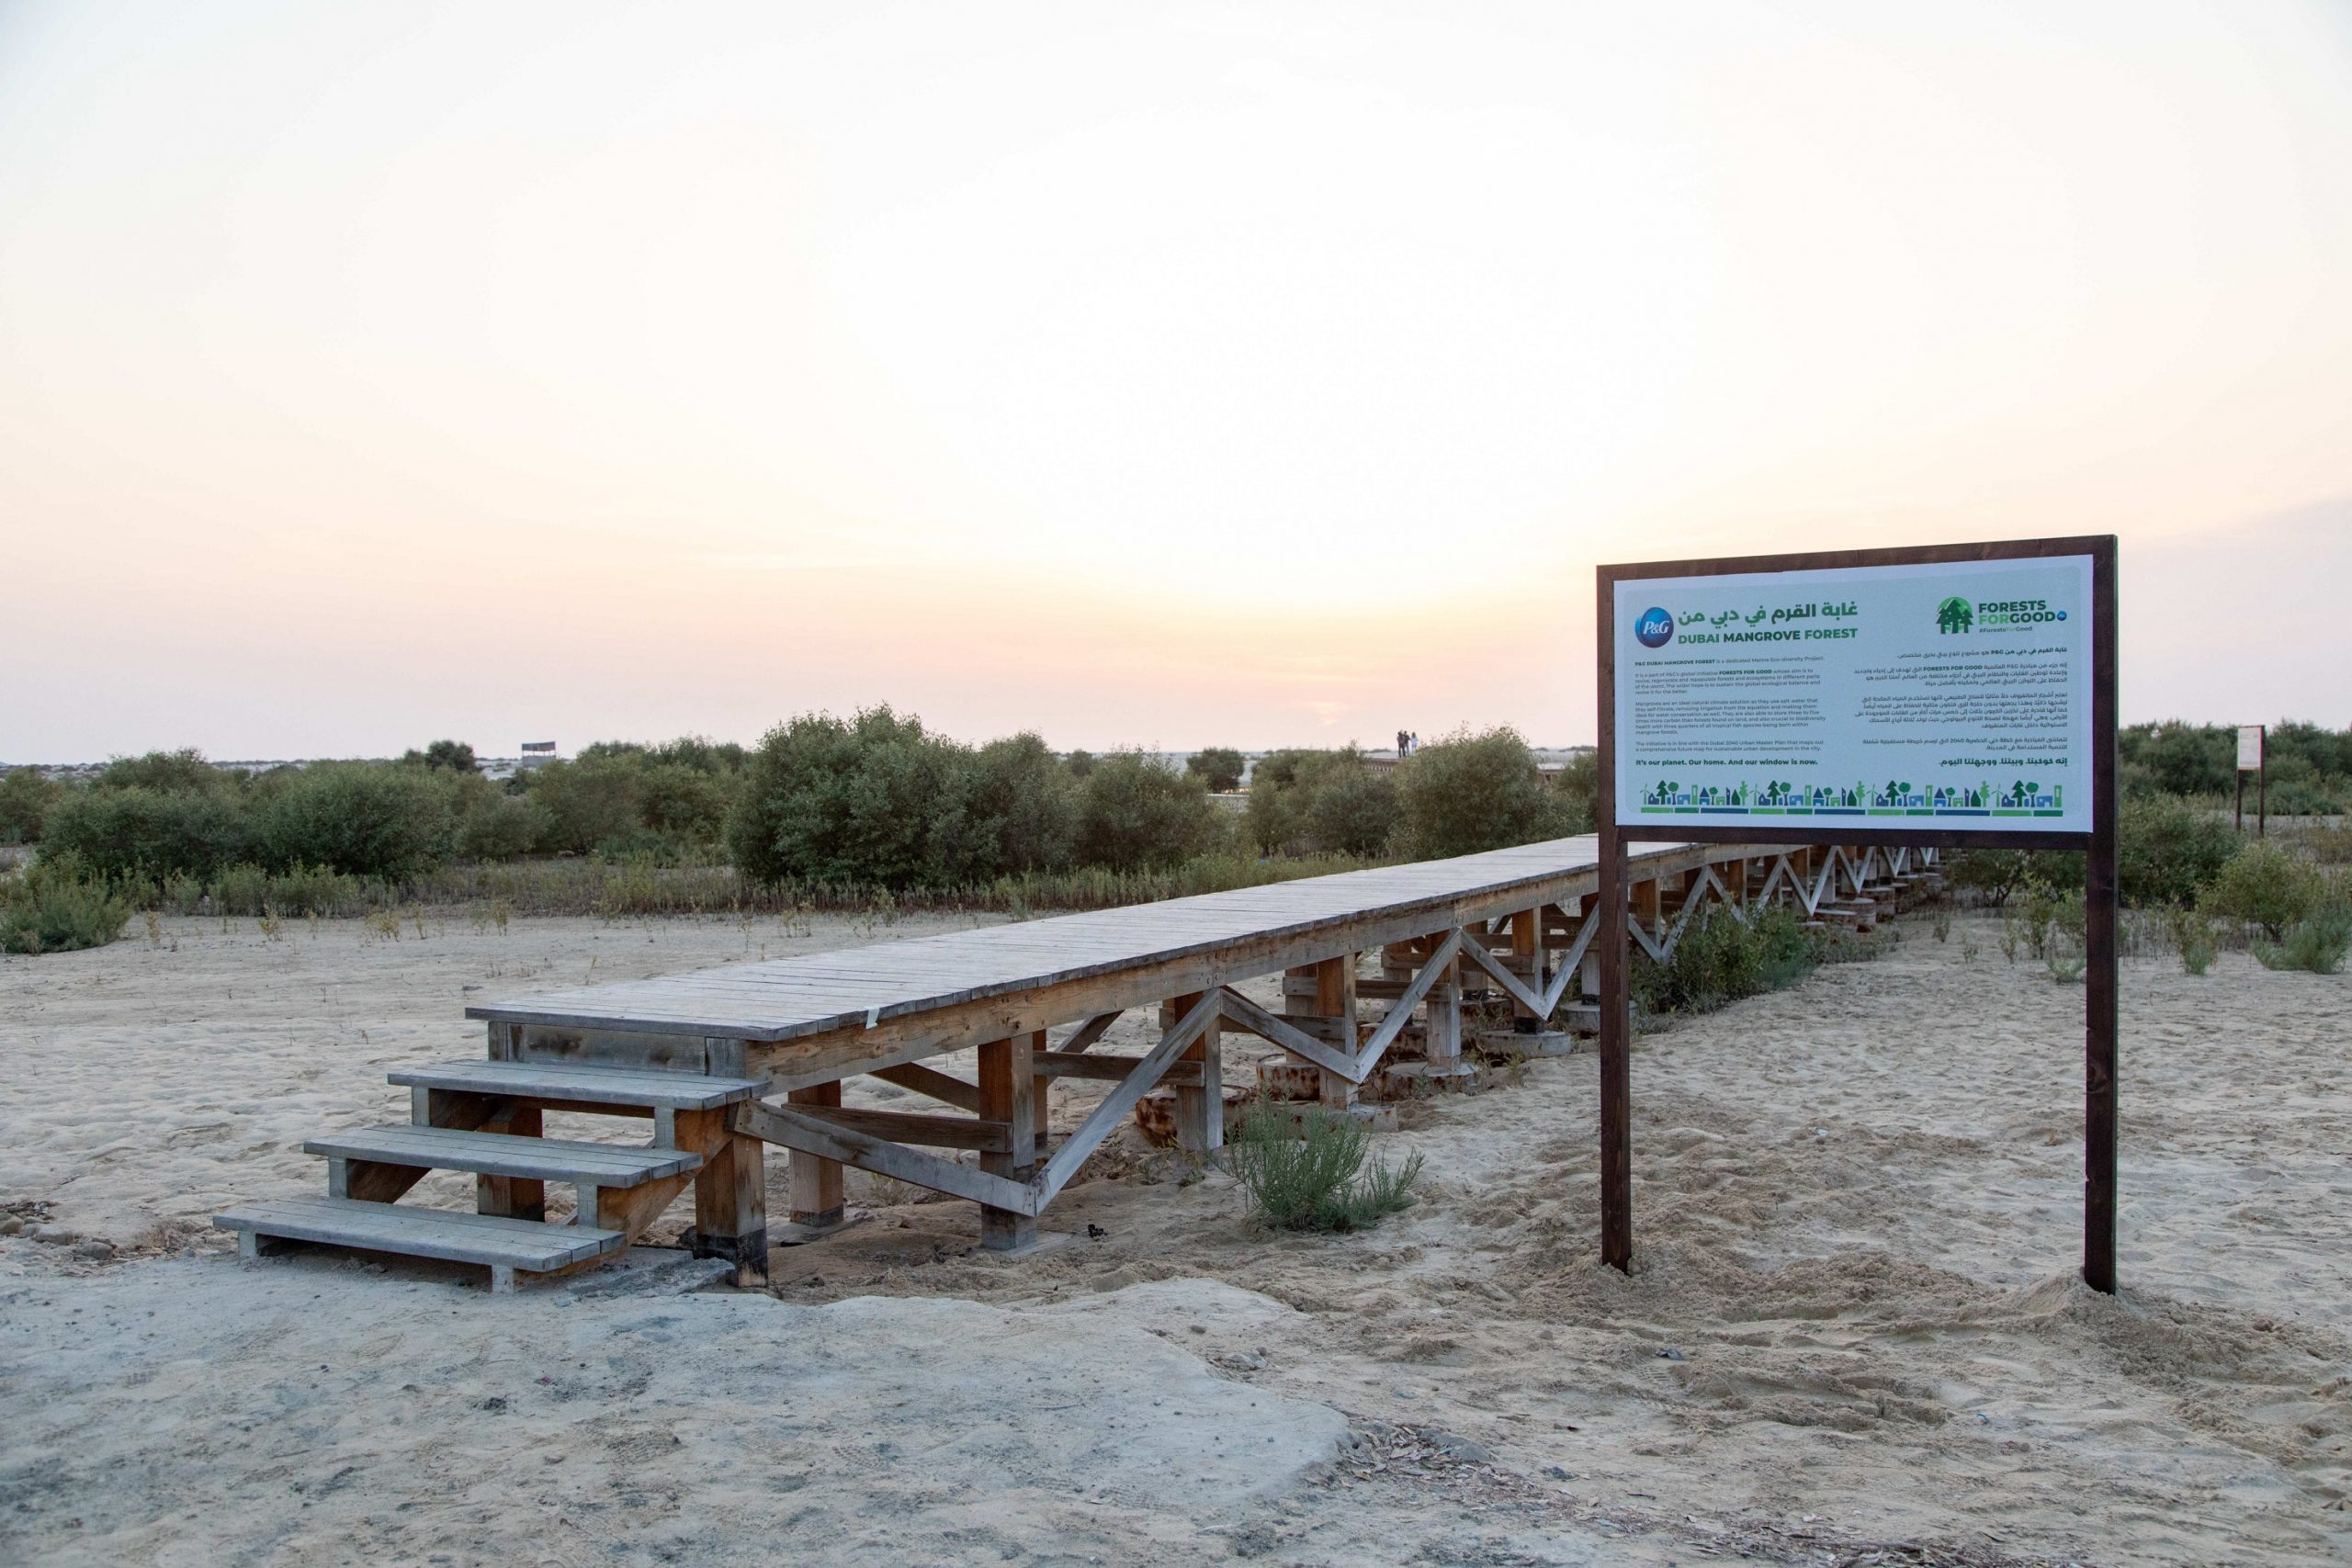 P&G and Carrefour Join Together to Plant 26 Forests in the UAE